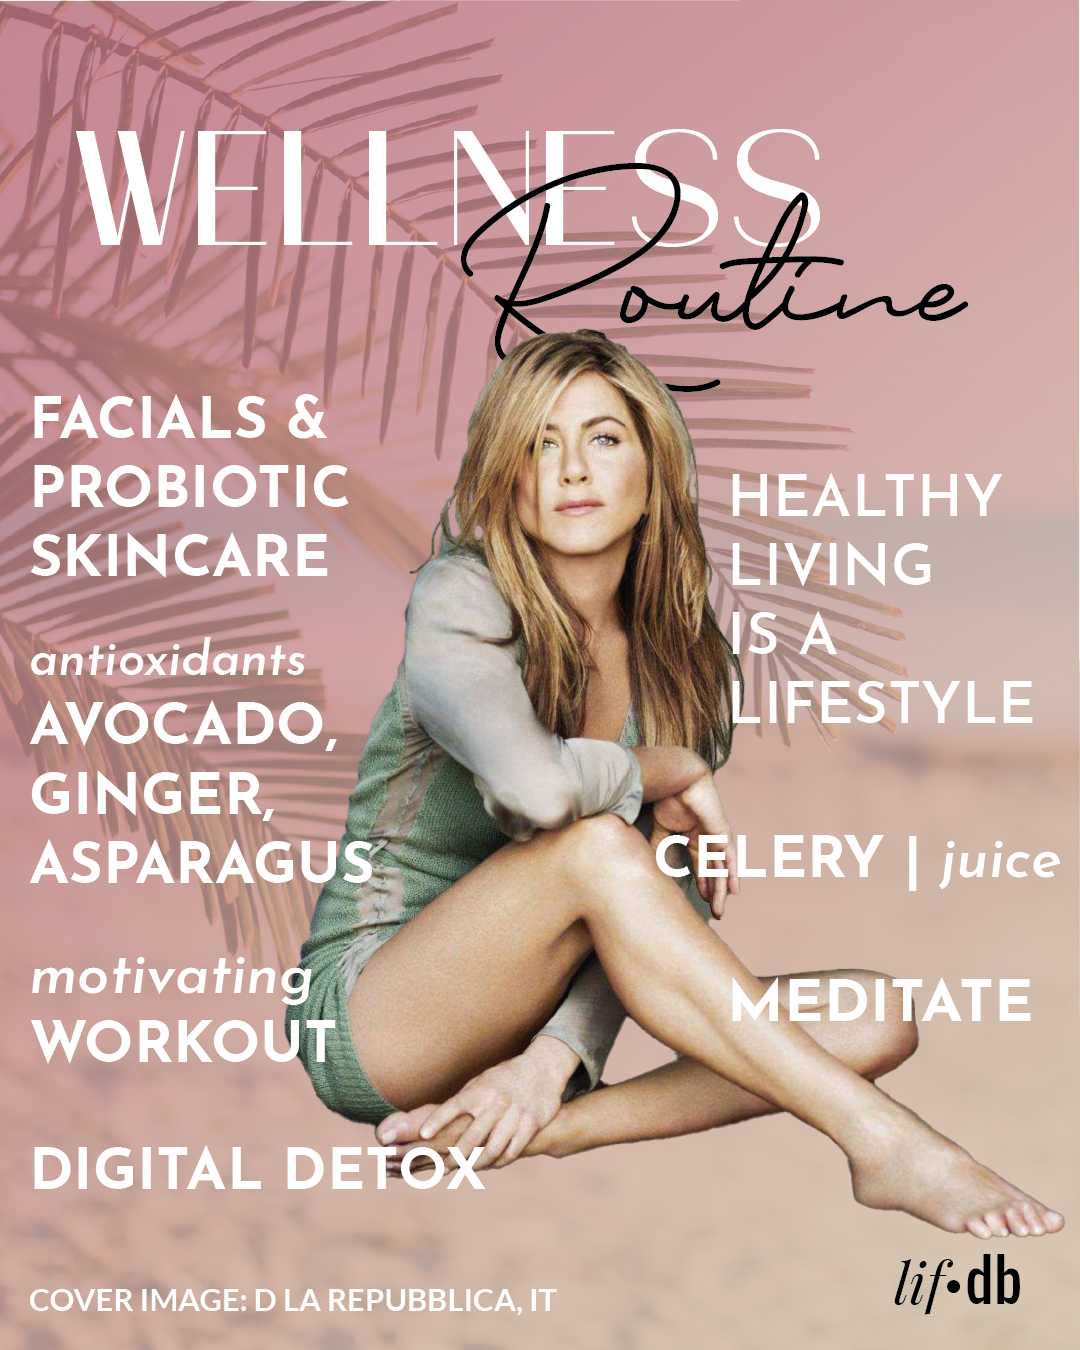 Jennifer Aniston Wellness Routine